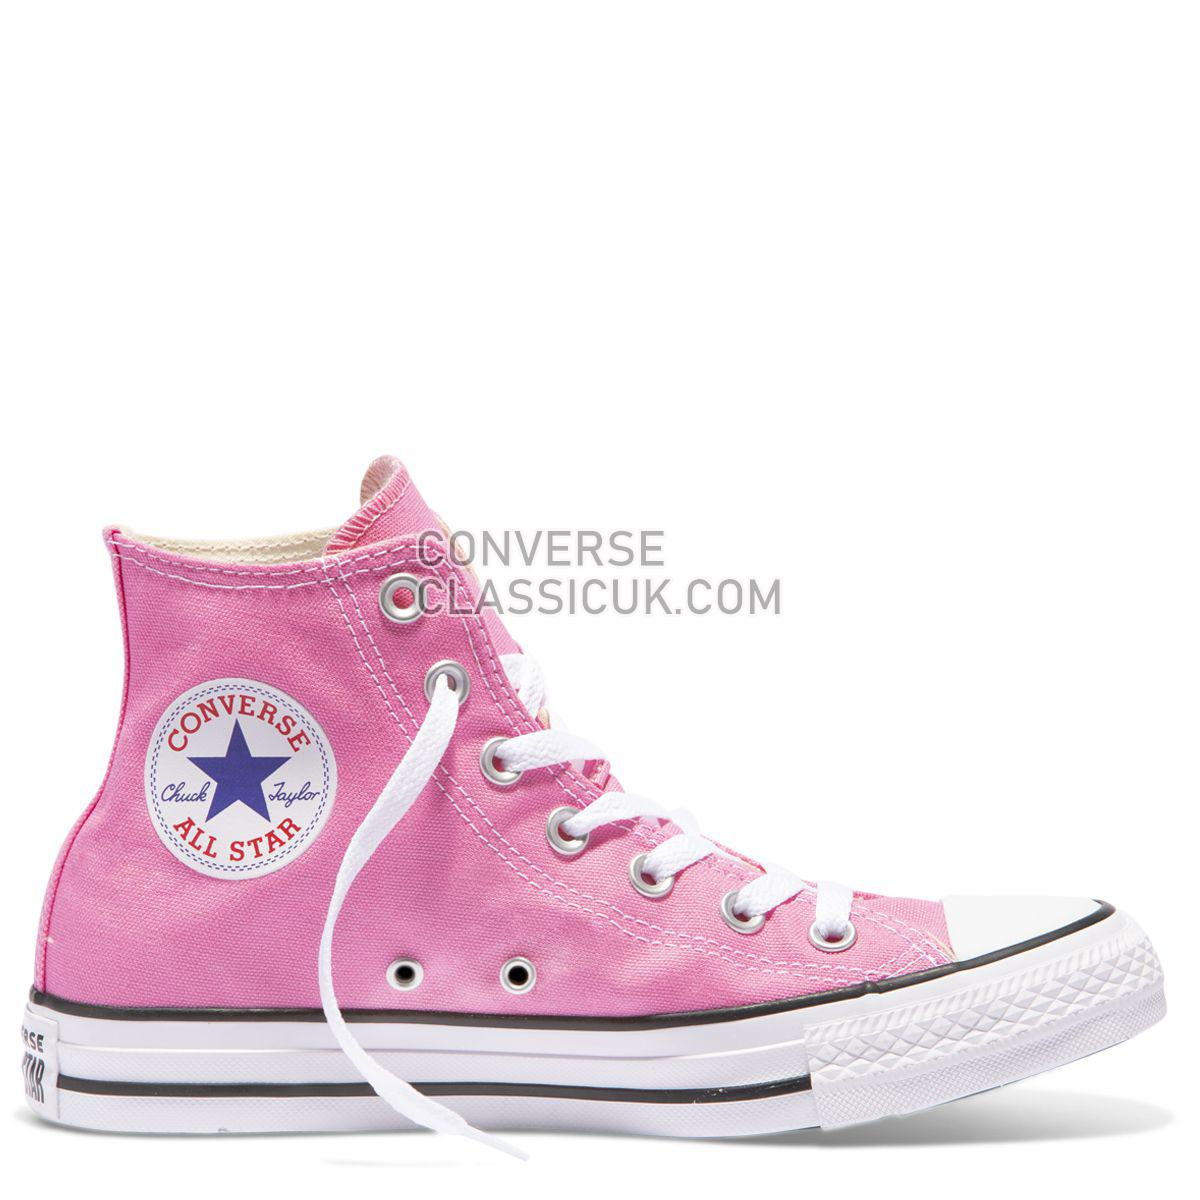 Converse Chuck Taylor All Star Colour High Top Pink Mens Womens Unisex 19006 Pink Shoes